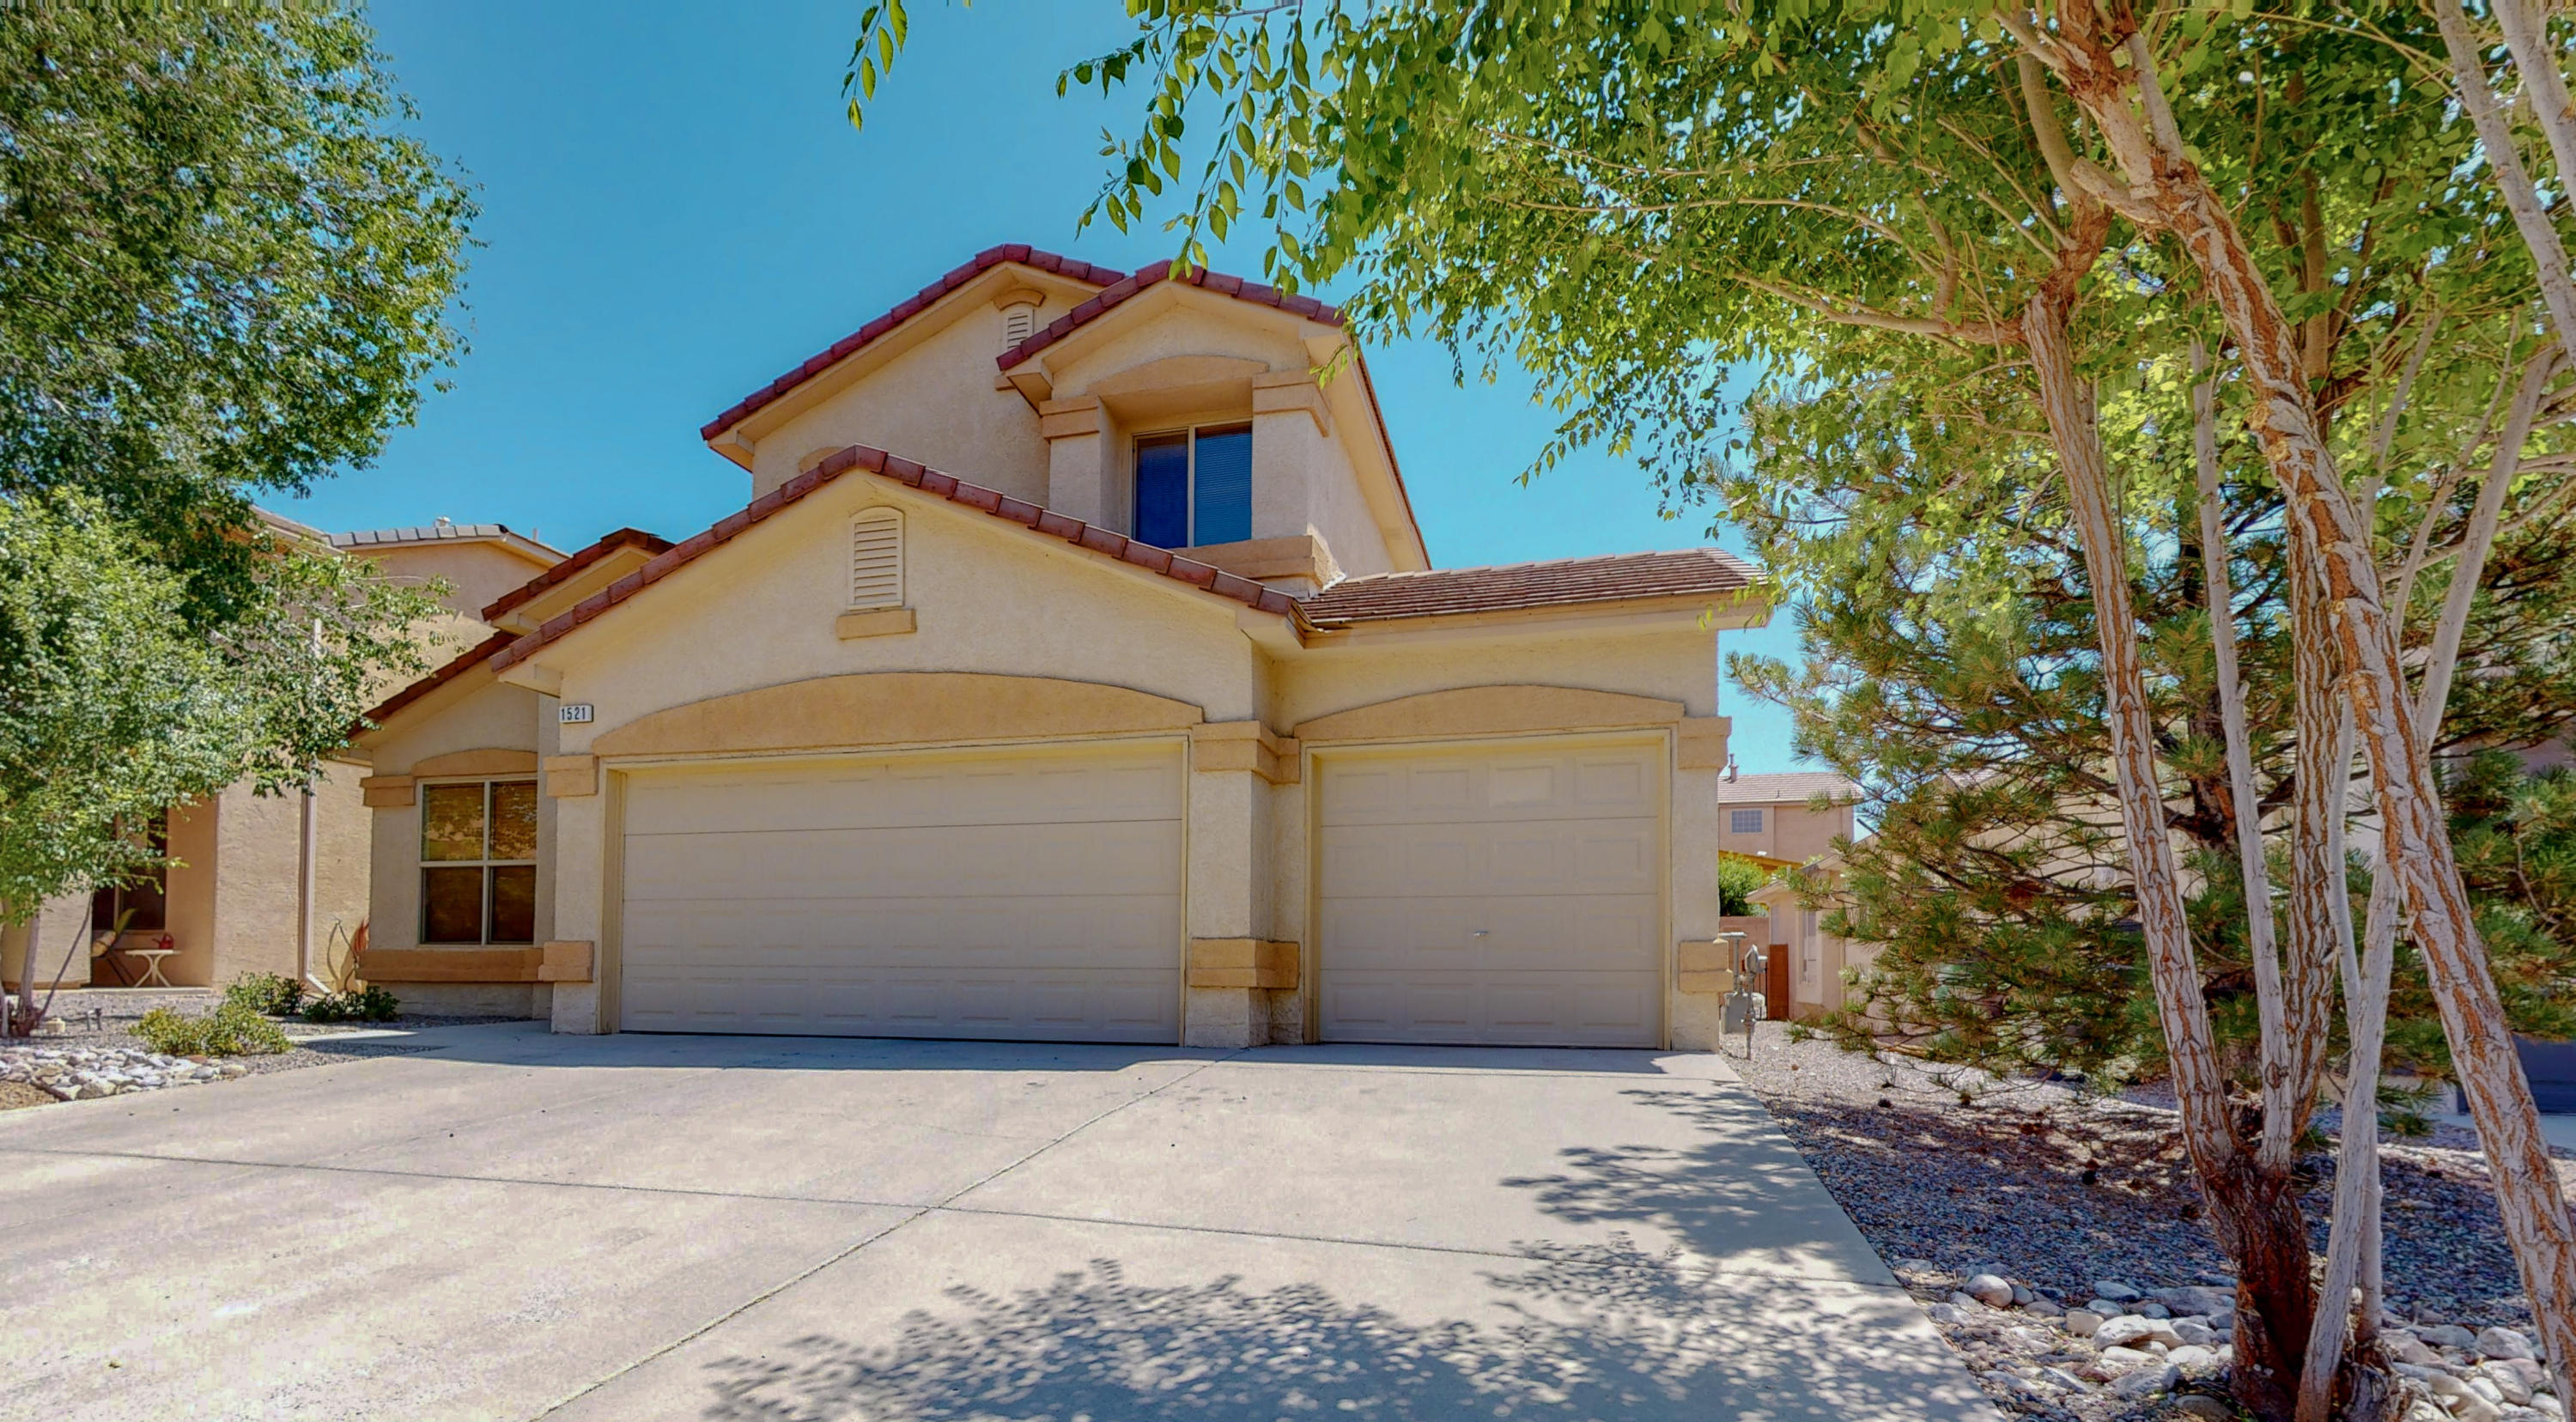 Open House Saturday 6/27 11:30 - 1:30! A fabulous two-story DR Horton Home! Your new home features three bedrooms, three bathrooms, a bonus loft space, soaring ceilings with clerestory windows, and a three-car garage! Updates include New Carpet and Tile throughout the entire home.  Don't wait to see this beautiful home in the heart of Cabezon. Close to shopping, dining, entertainment. Parks, public pools!  Schedule a private showing or take a virtual walkthrough tour! Virtual Tour will be available Wednesday, 6/24!